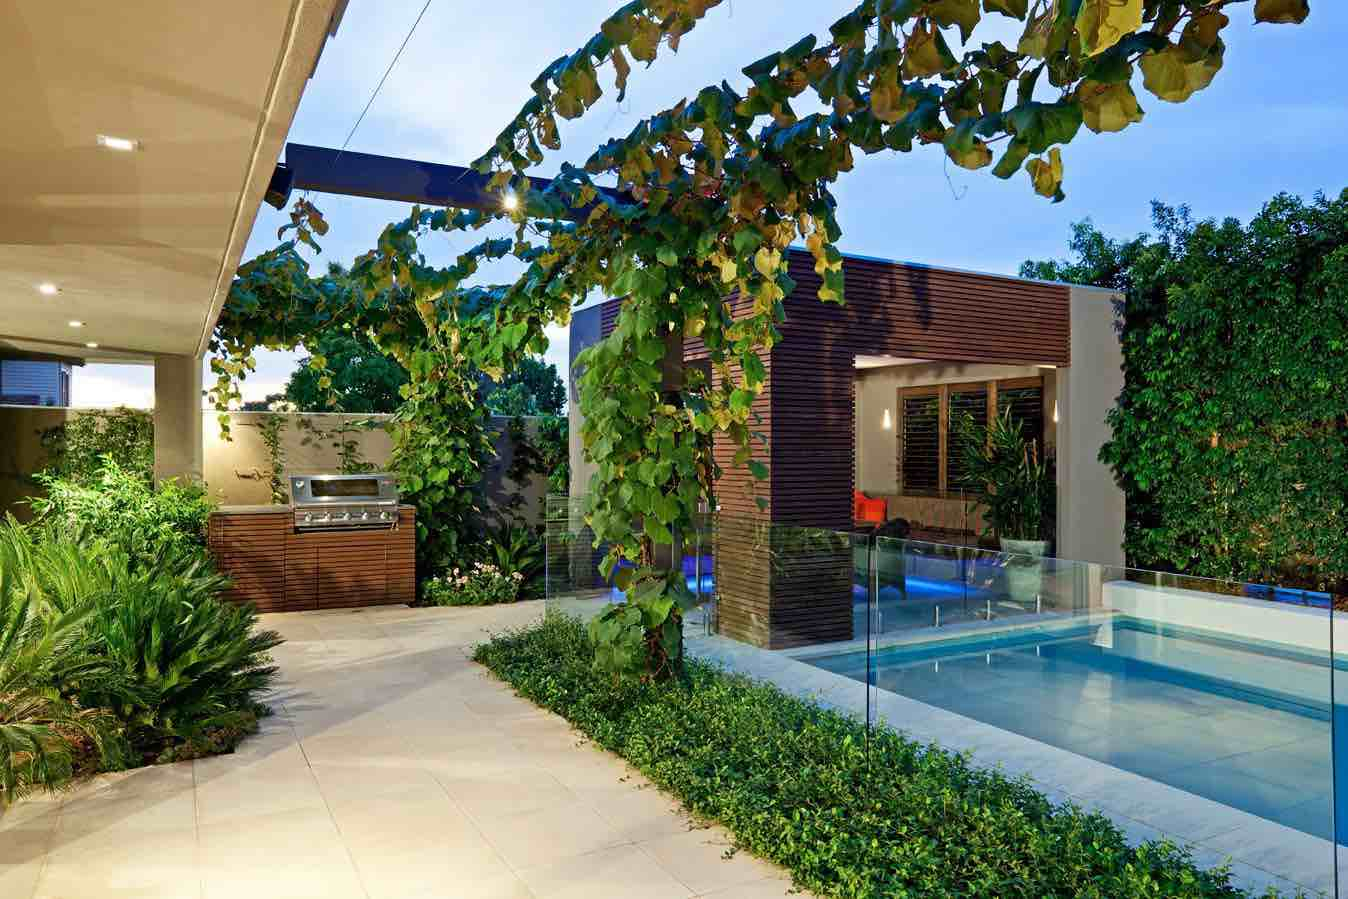 41 Backyard Design Ideas For Small Yards | Worthminer on master suite ideas for home, summer for home, library ideas for home, halloween ideas for home, storage ideas for home, carpet ideas for home, fire pit for home, birthday ideas for home, plants ideas for home, spas for home, craft ideas for home, landscaping for home, fall ideas for home, backyard thanksgiving, room ideas for home, retaining walls for home, den ideas for home, office ideas for home, backyard inspirations, gardening for home,